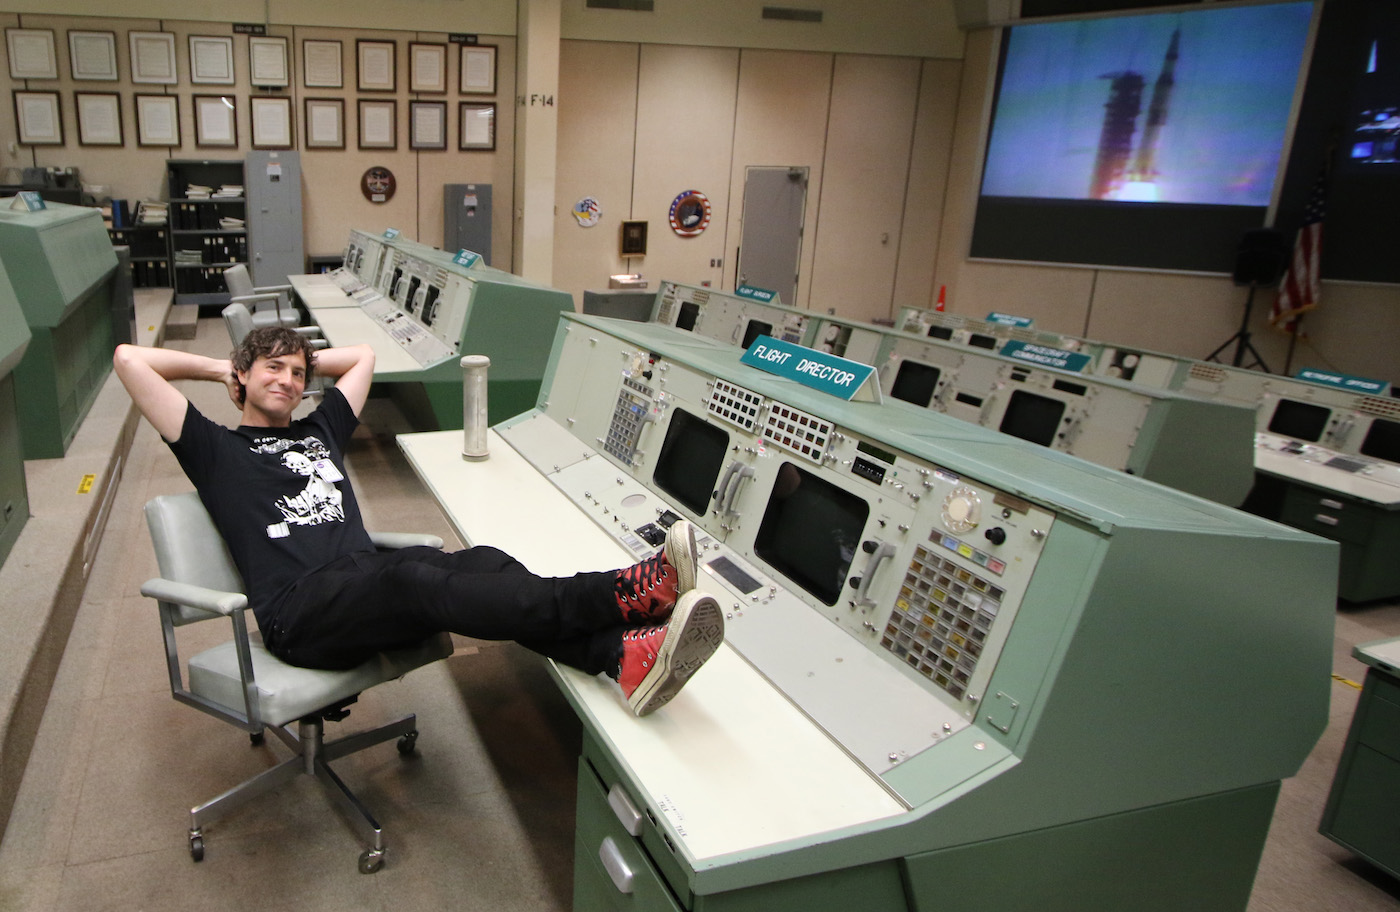 Space Center Houston Offers THE ULTIMATE NASA VIP TOUR! (It Used To Be Slightly More Ultimate…But It's Still Really Ultimate!)